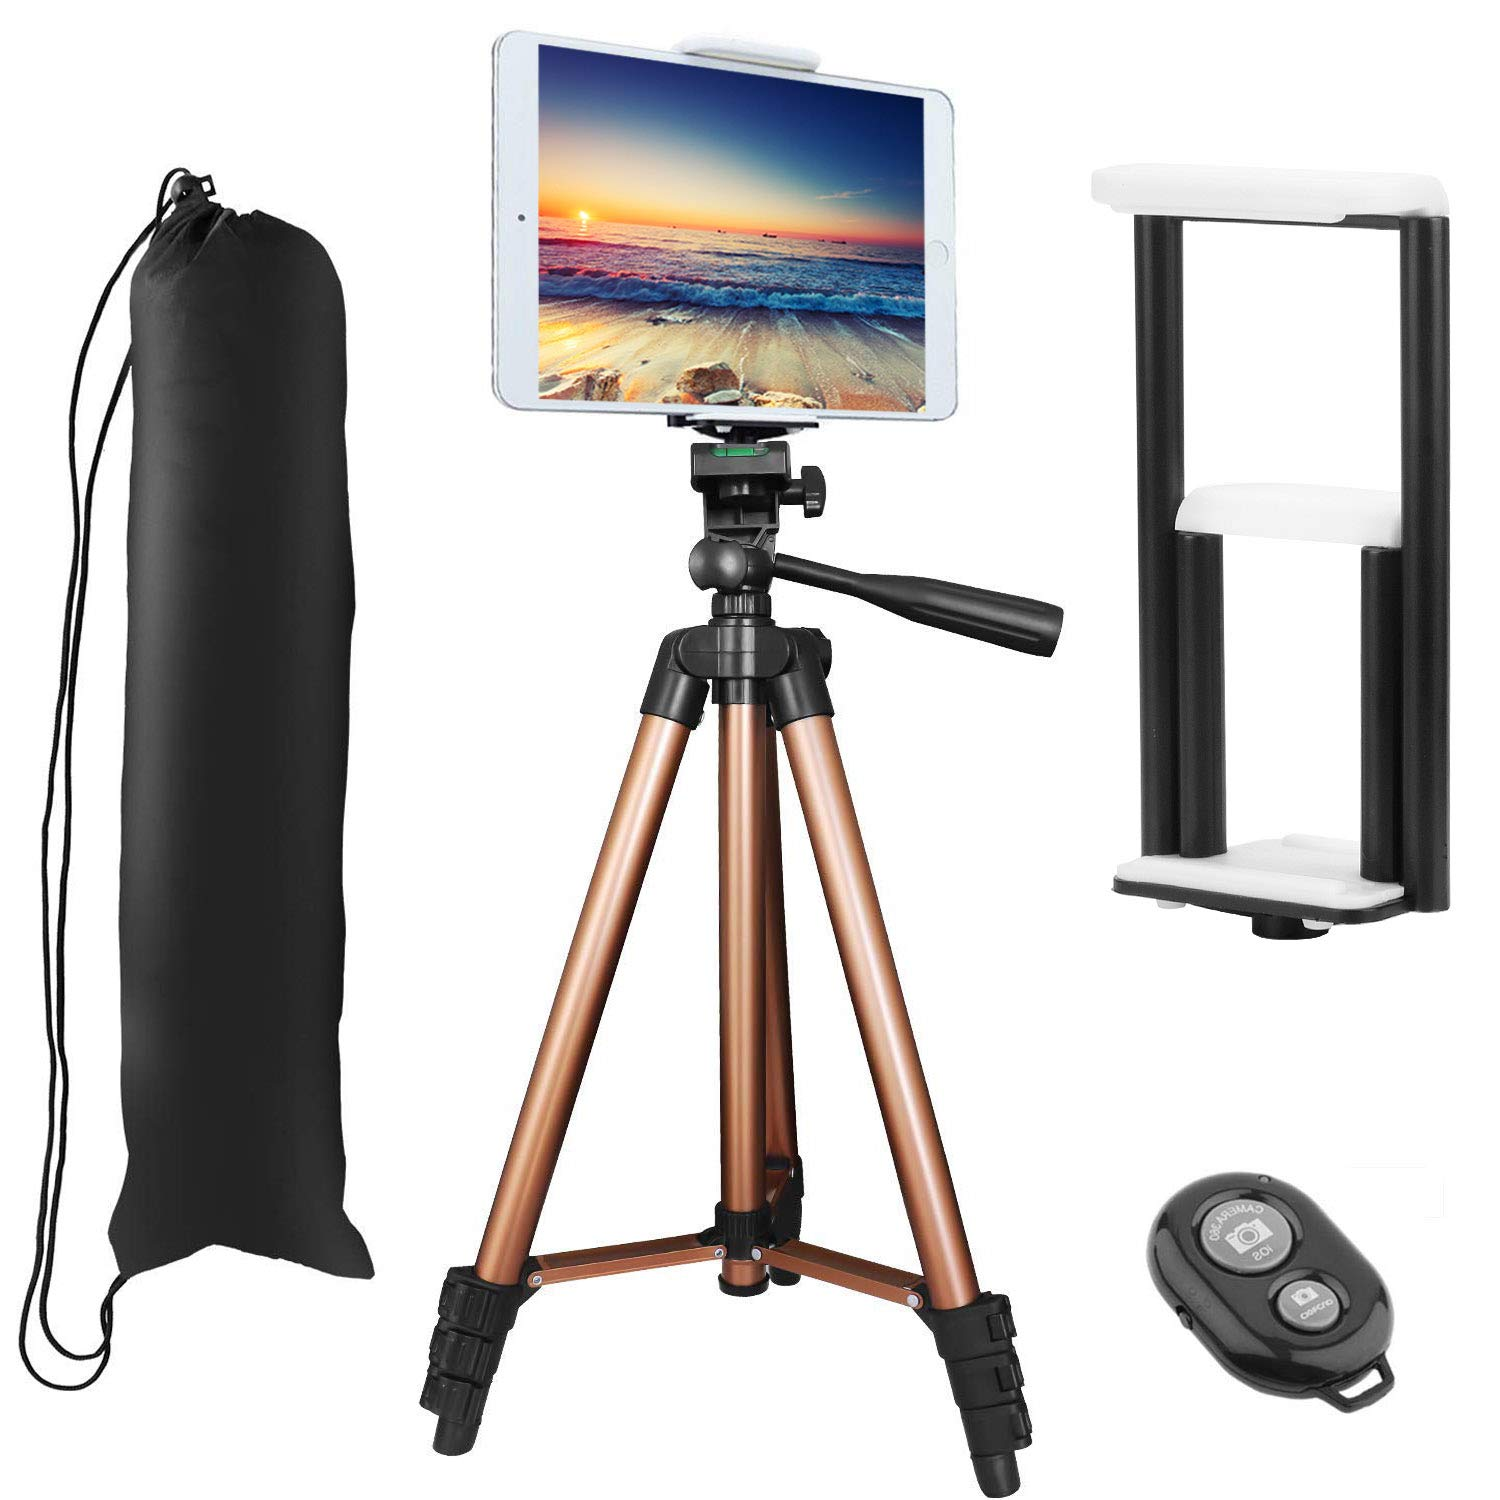 PEYOU Compatible for iPad iPhone Tripod, 50 inch Lightweight Aluminum Phone Camera Tablet Tripod + Wireless Remote + 2 in 1 Mount Holder Compatible for Smartphone (Width 2-3.3'), Tablet (Width 4.3-7.2') Tablet (Width 4.3-7.2)